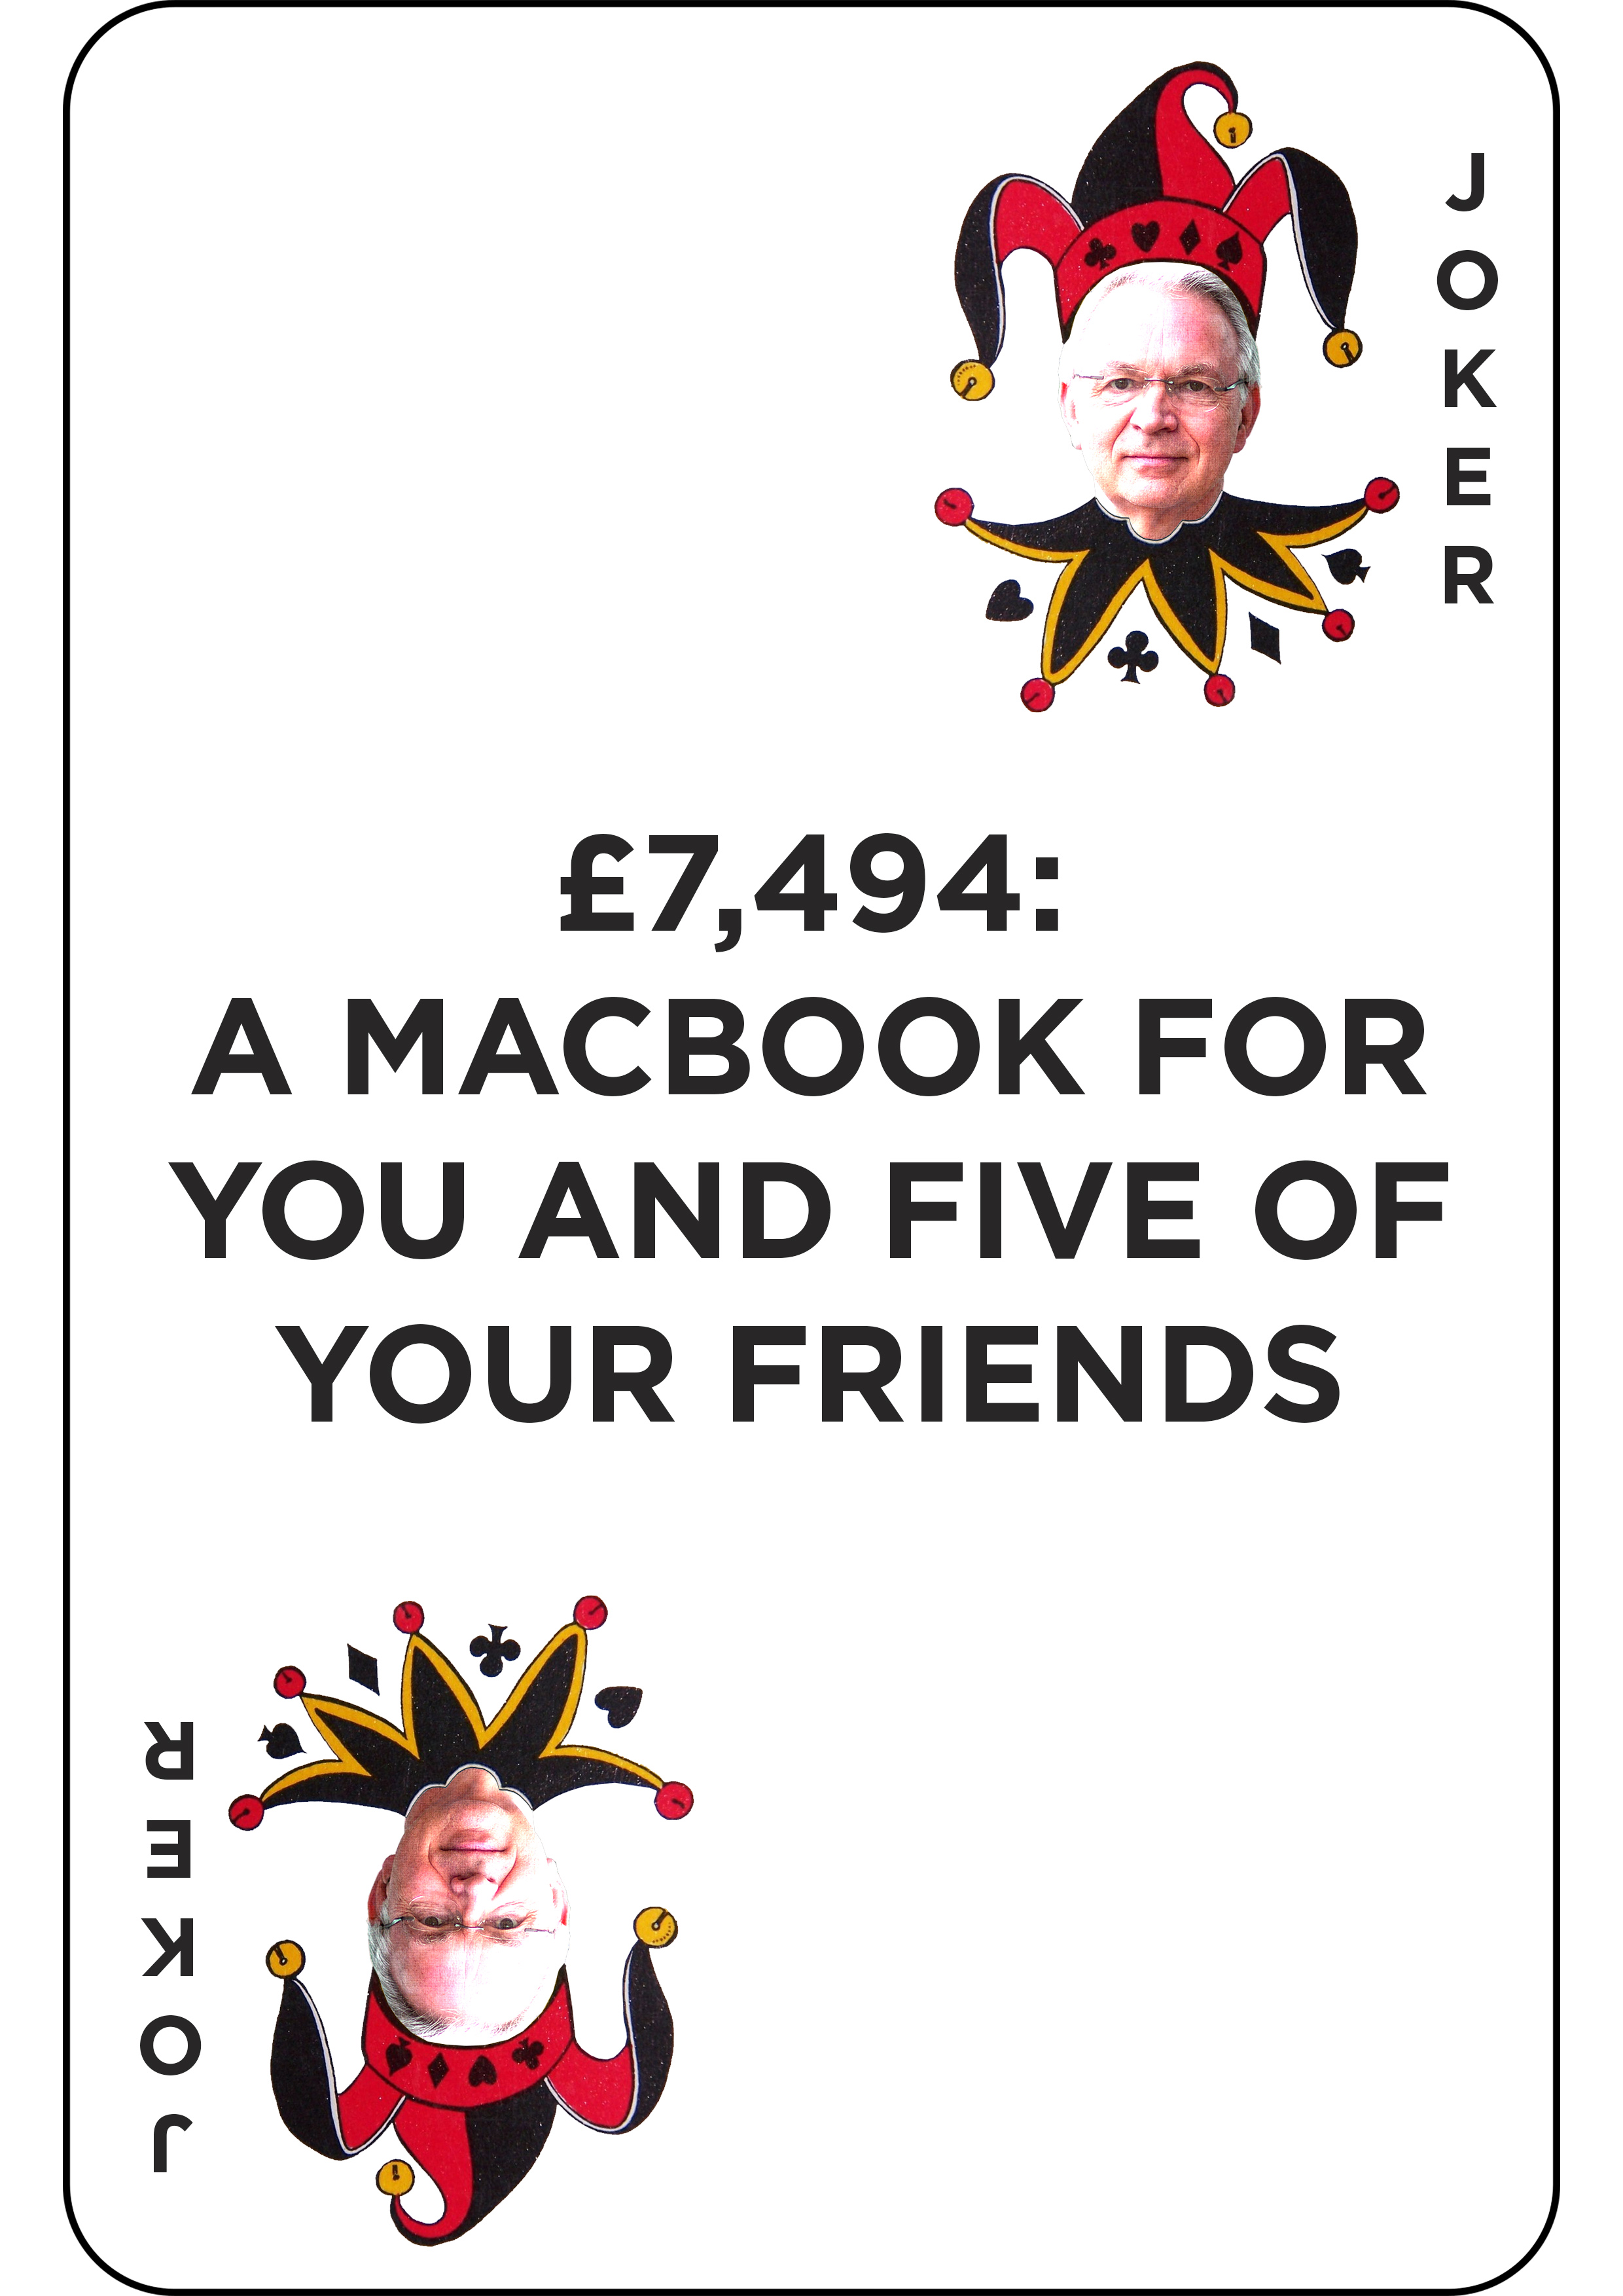 £7,494 - a macbook for you and five friends